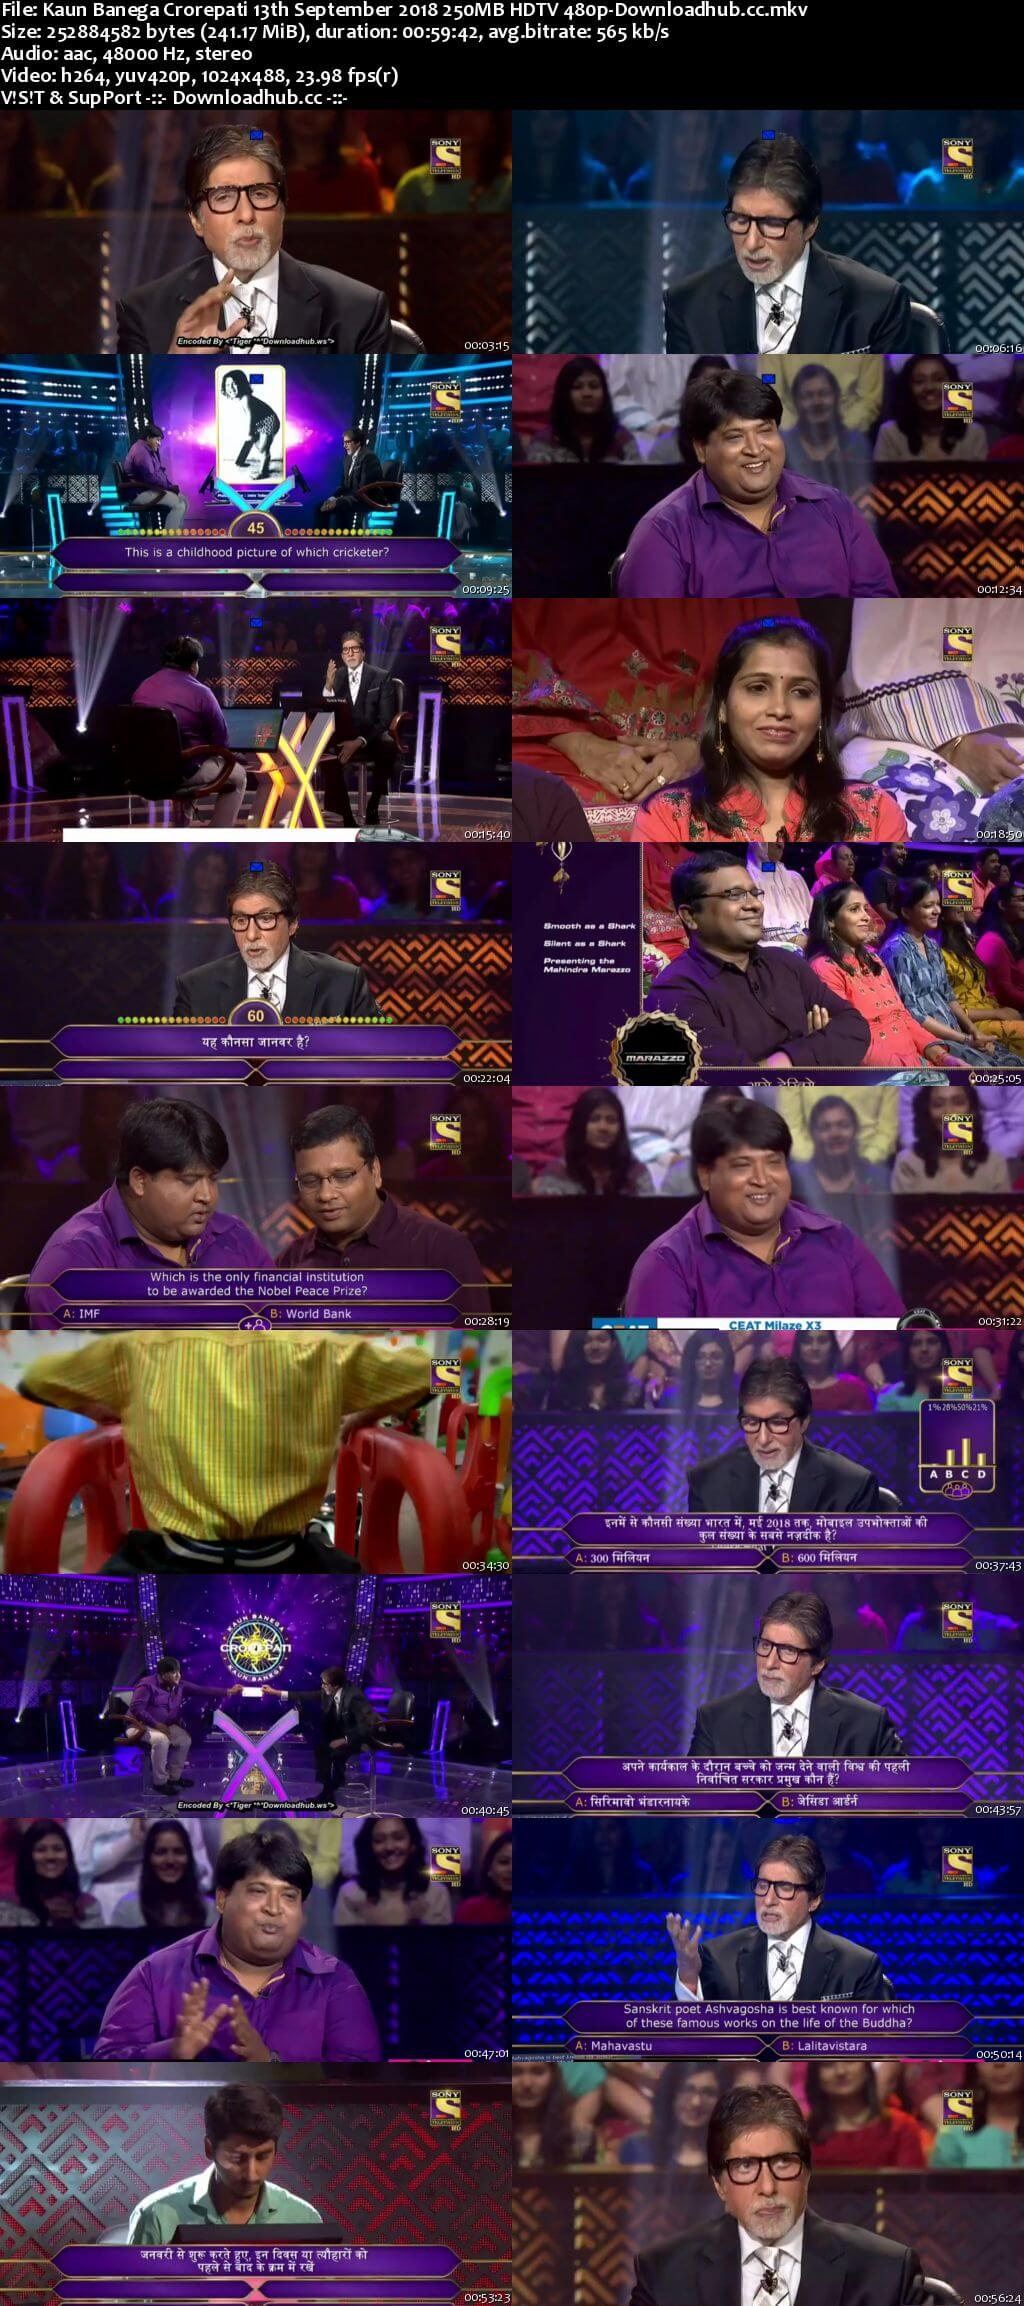 Kaun Banega Crorepati 13th September 2018 250MB HDTV 480p